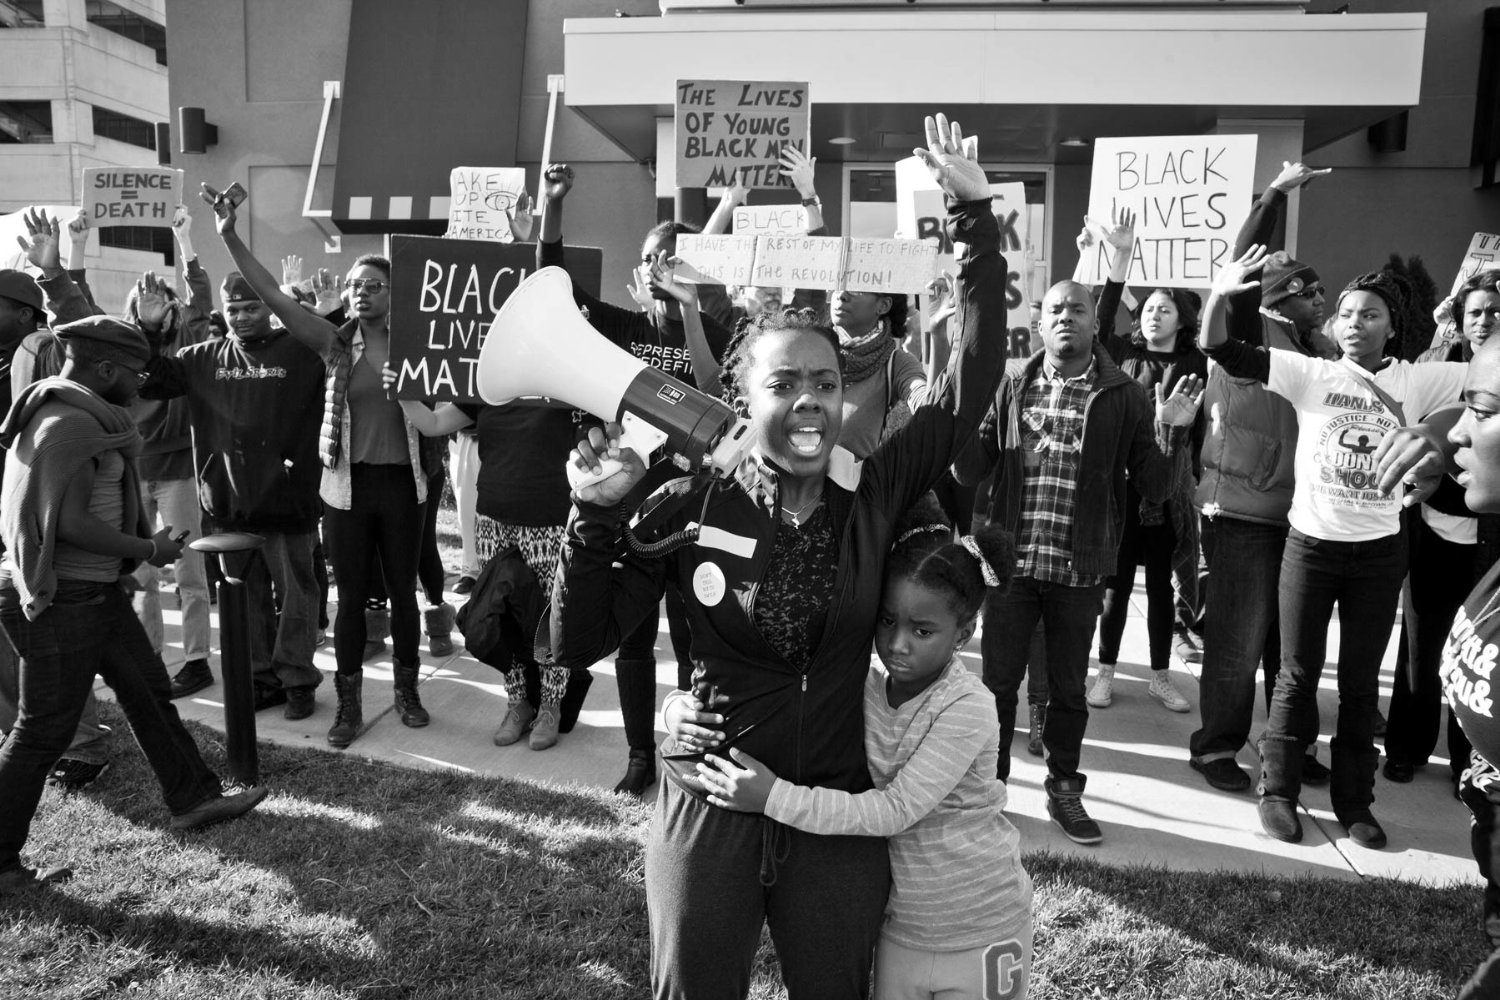 This film which documents the Ferguson uprising from the point of view of the citizens on the ground, rather than from the perspective of the media ...